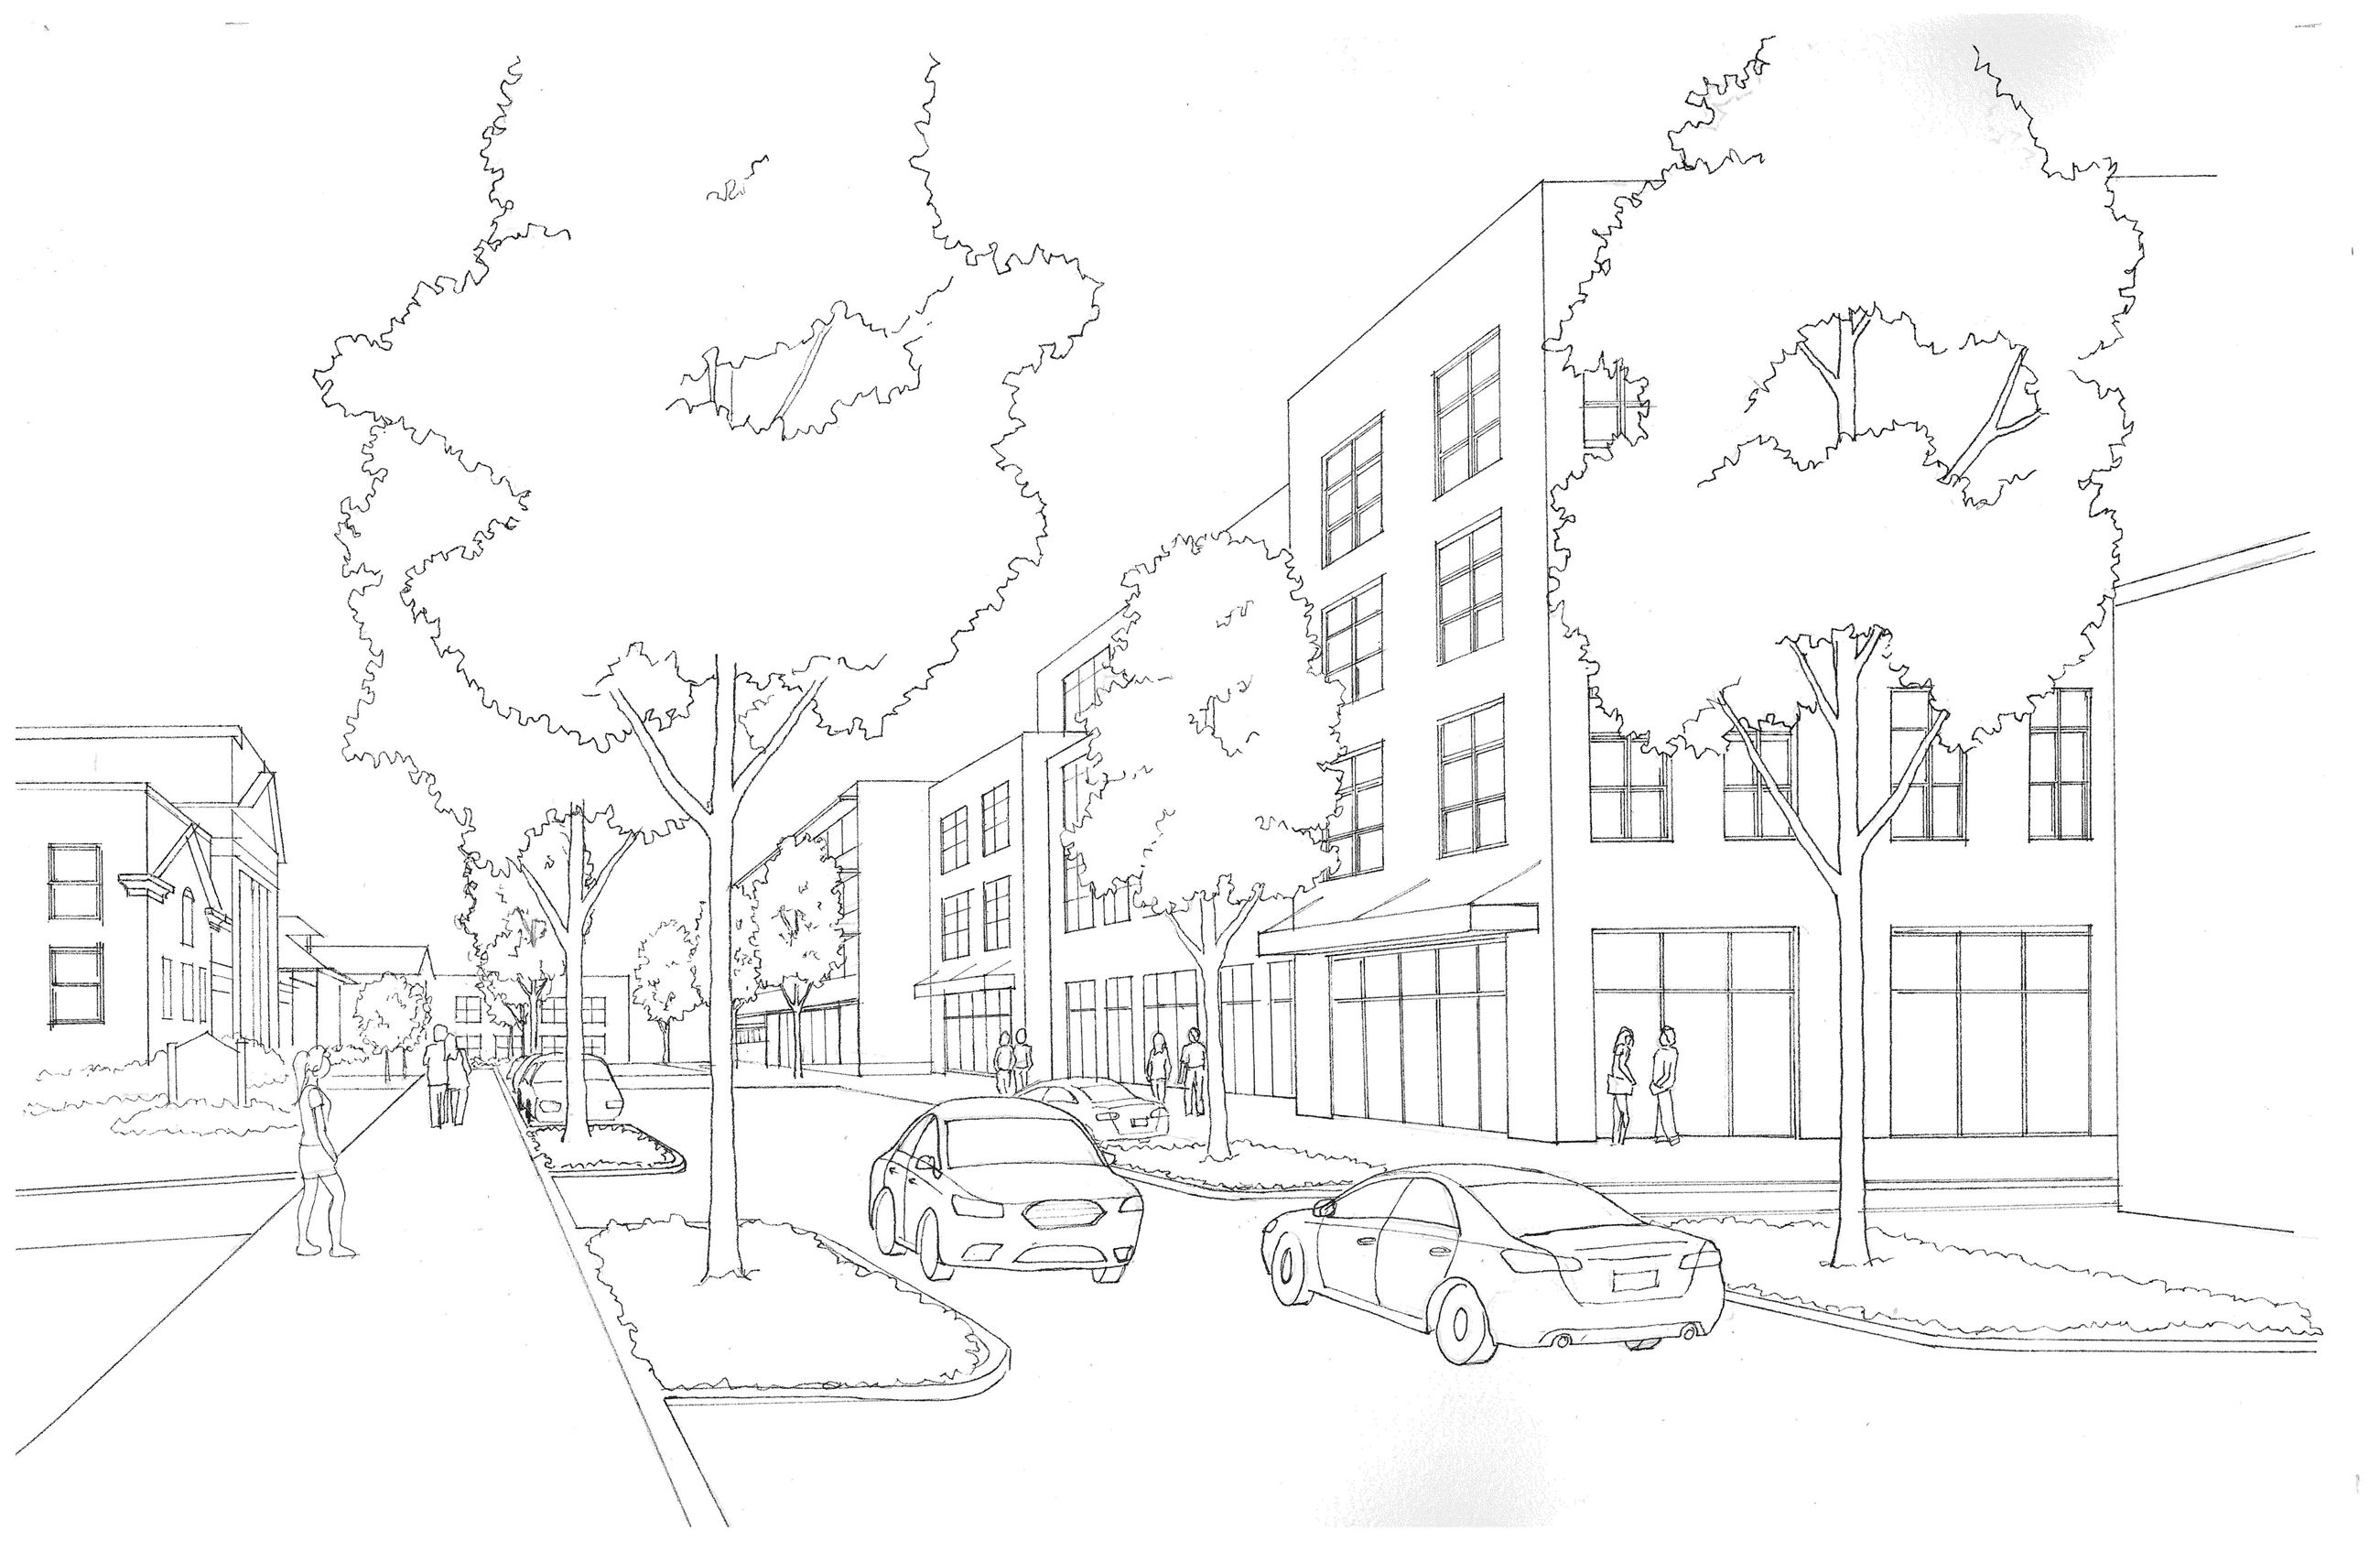 Church Ave Proposed Streetscape 4th to 5th - Schematic Sketch